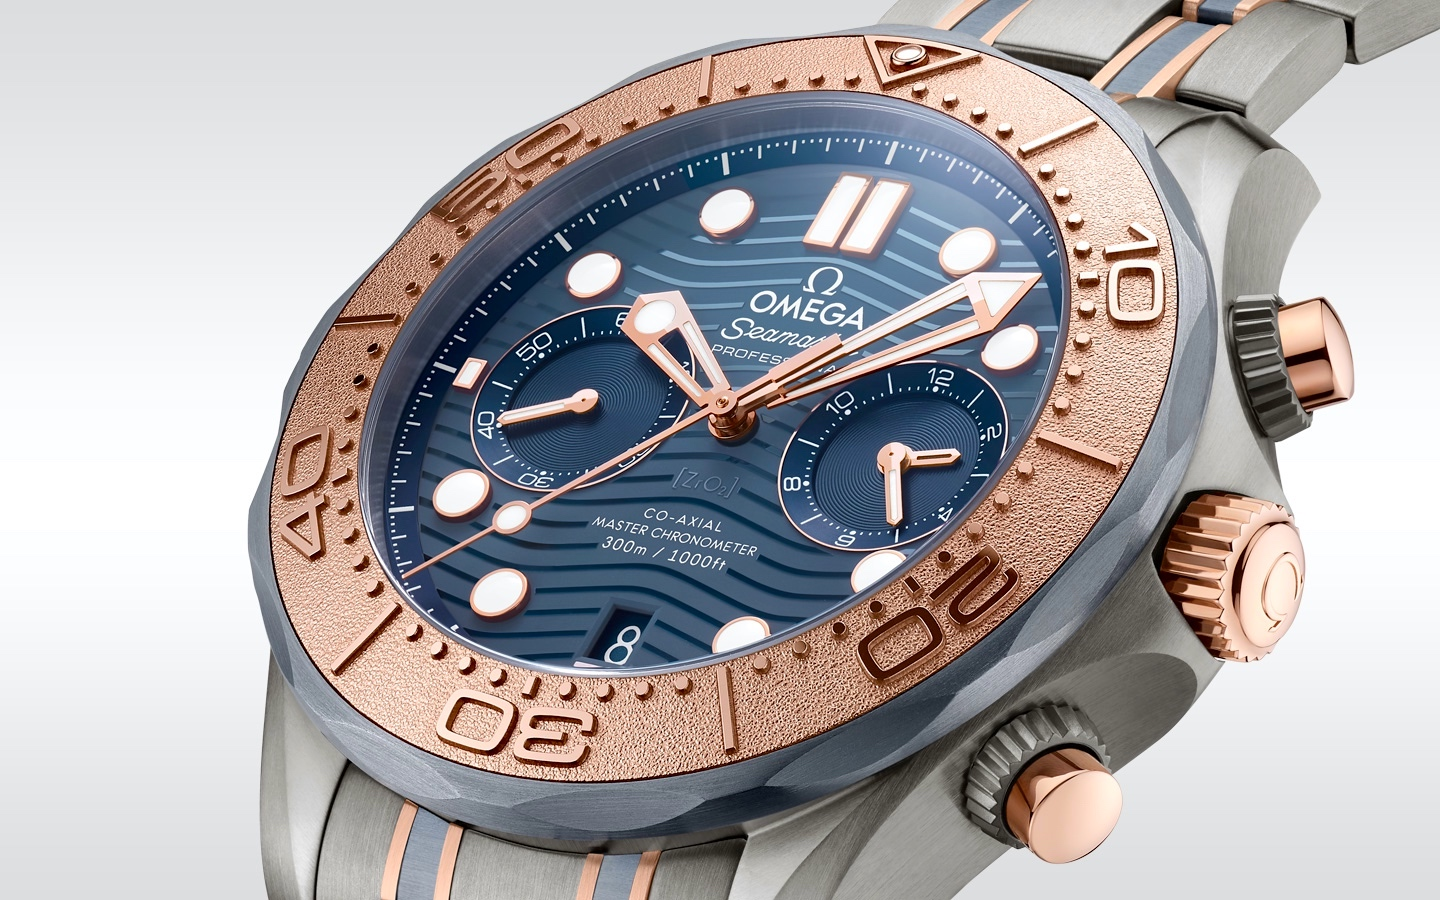 Omega Seamaster Diver 300M Chronograph - lateral